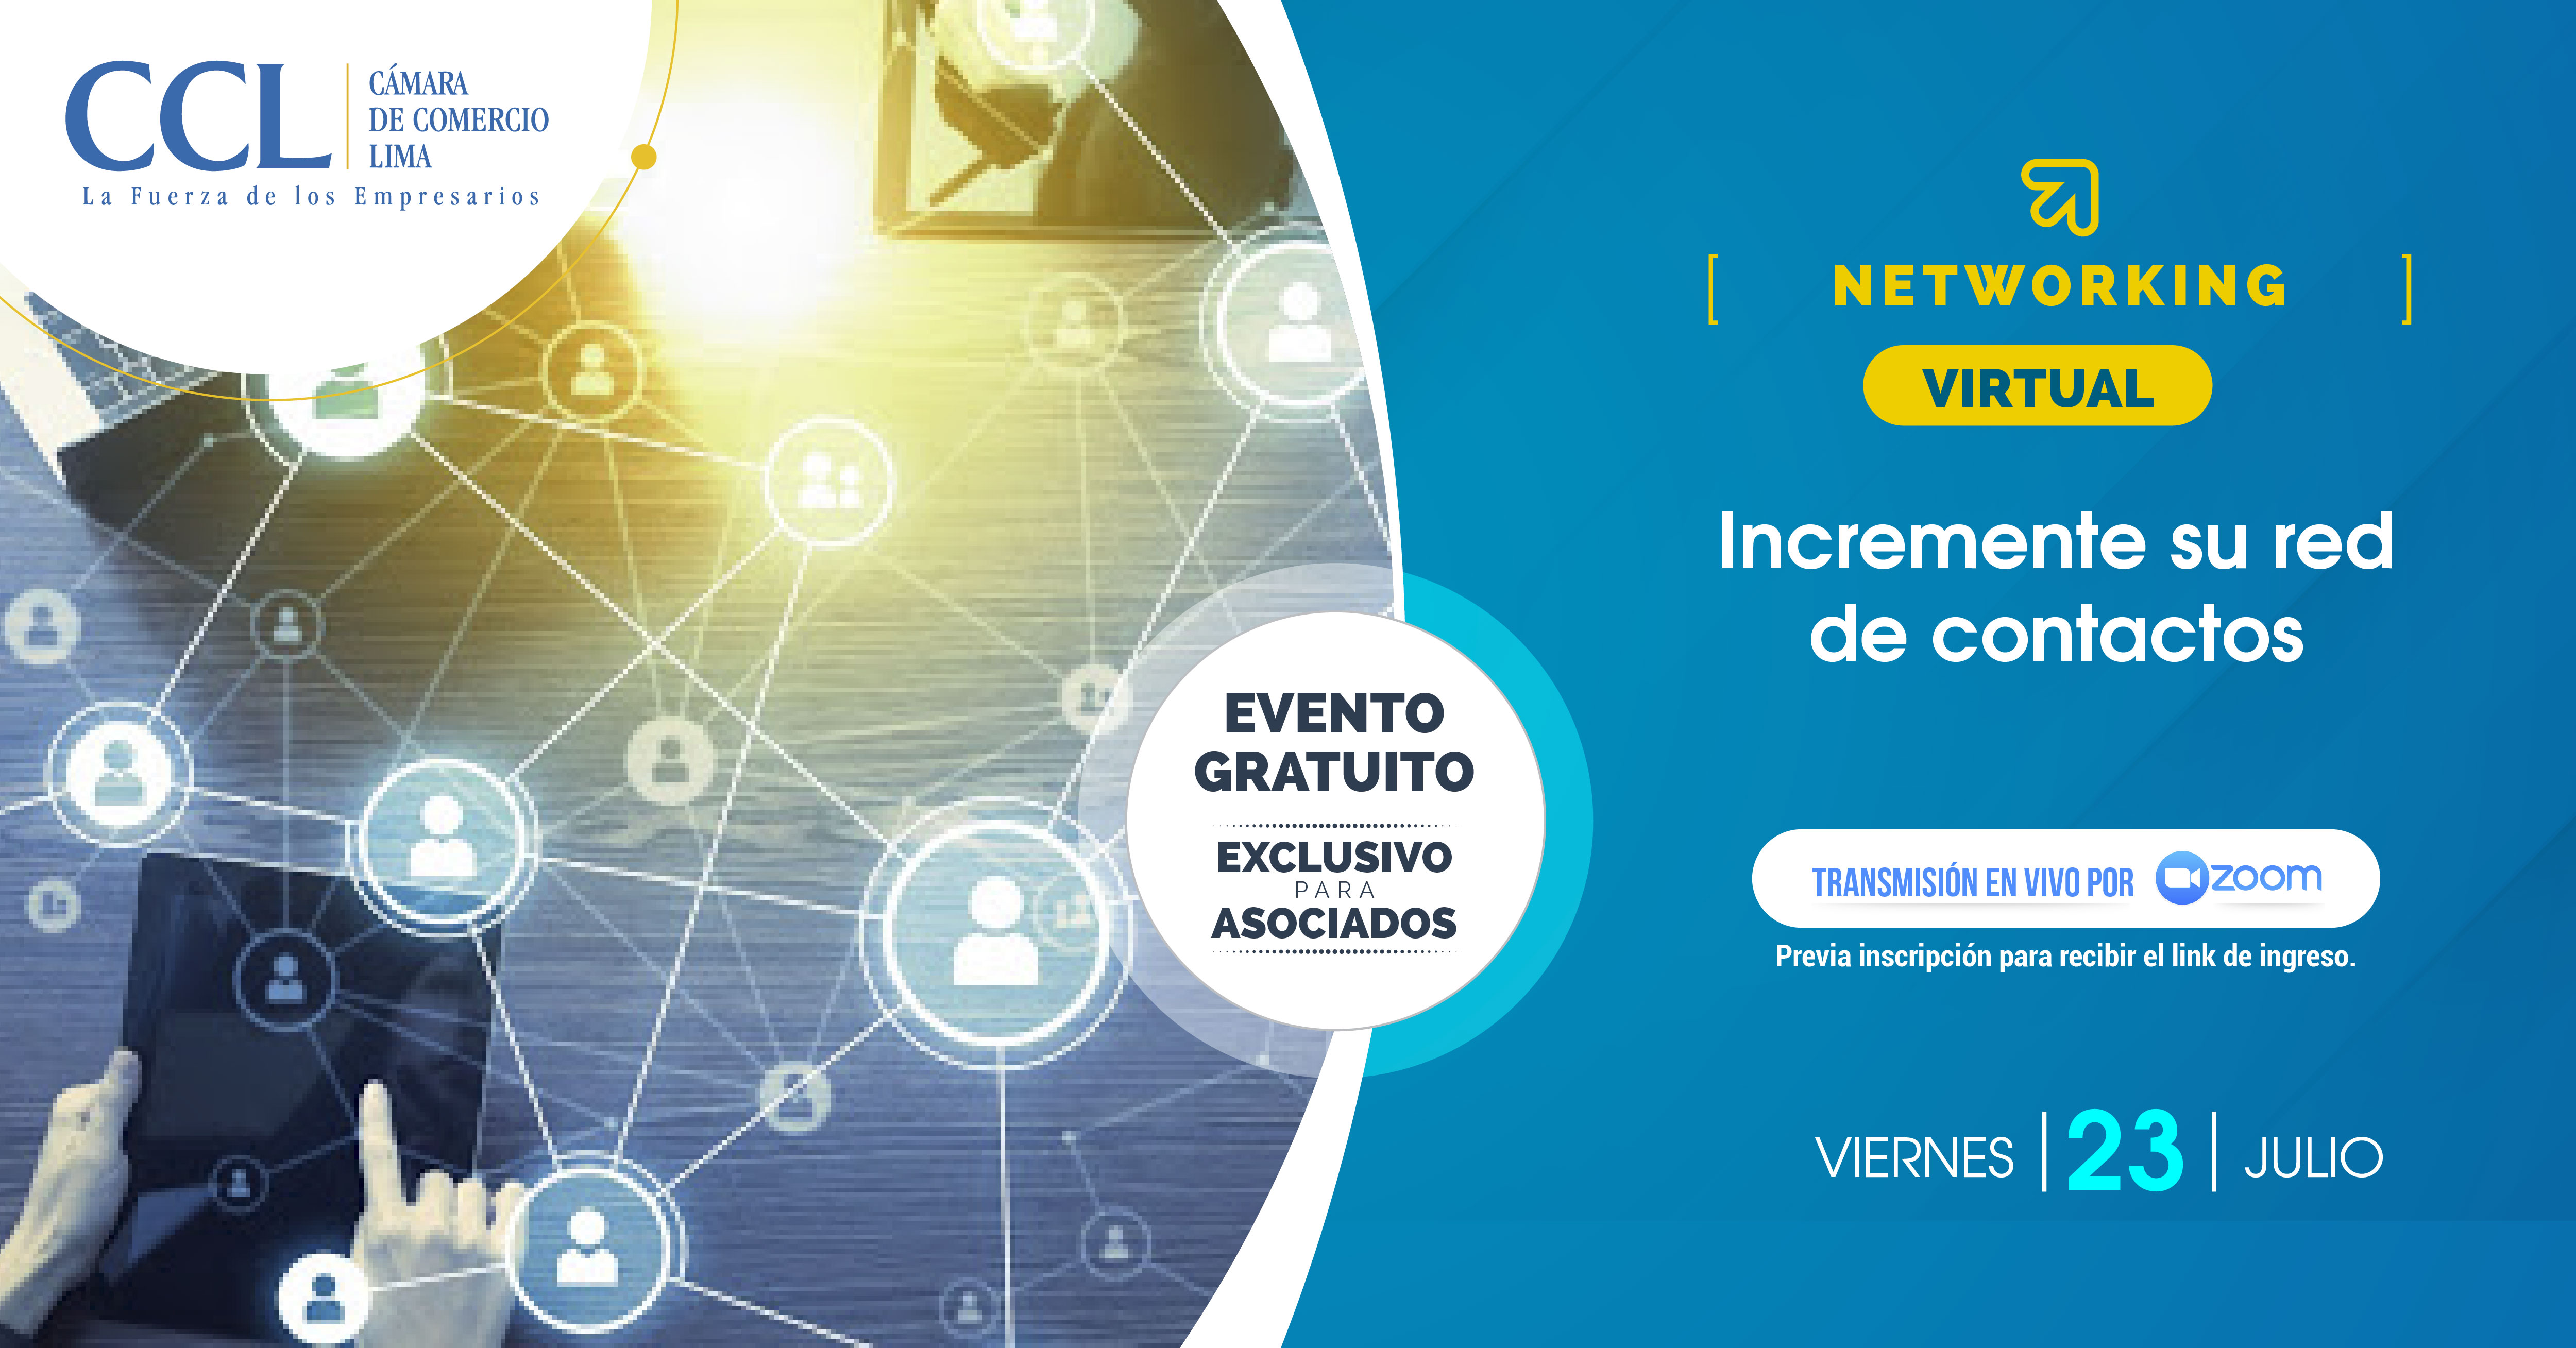 NETWORKING 23.07.21